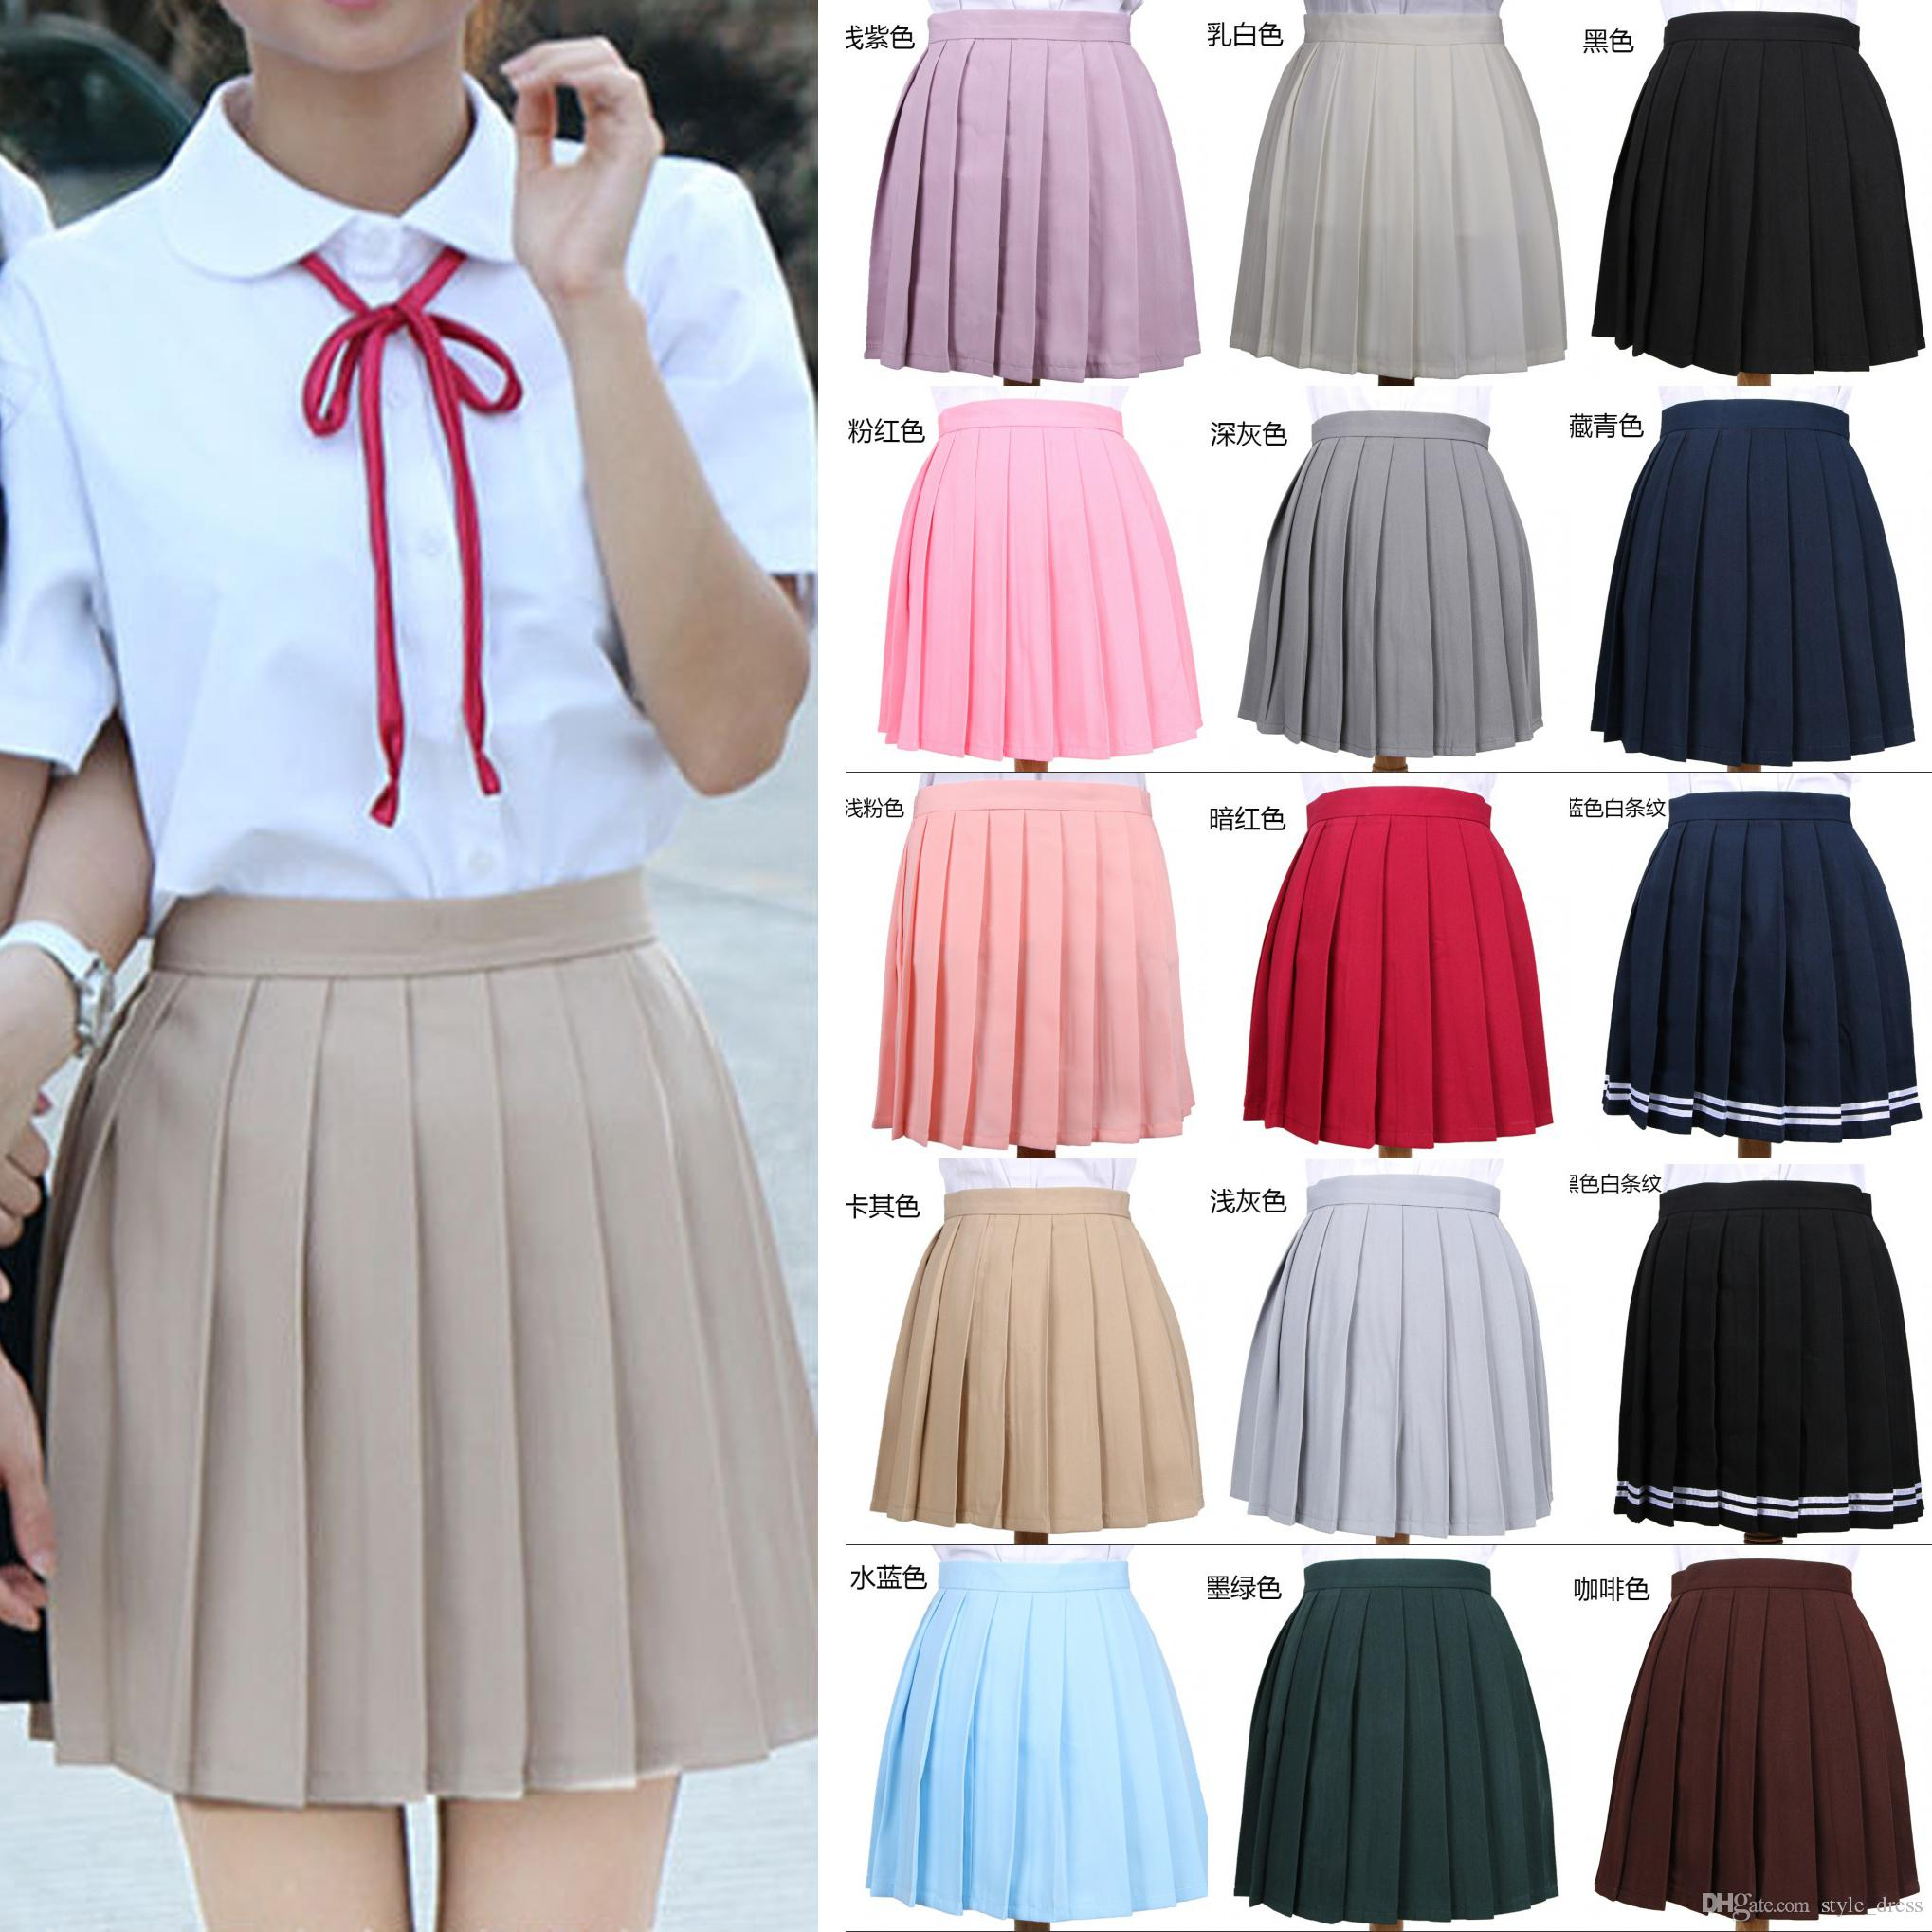 88c4f7ef96 2019 Girls High Waist Pleated Skirt Anime Cosplay School Uniform JK Student  Girls Solid A Line Mini Skirt From Style_dress, $13.07 | DHgate.Com